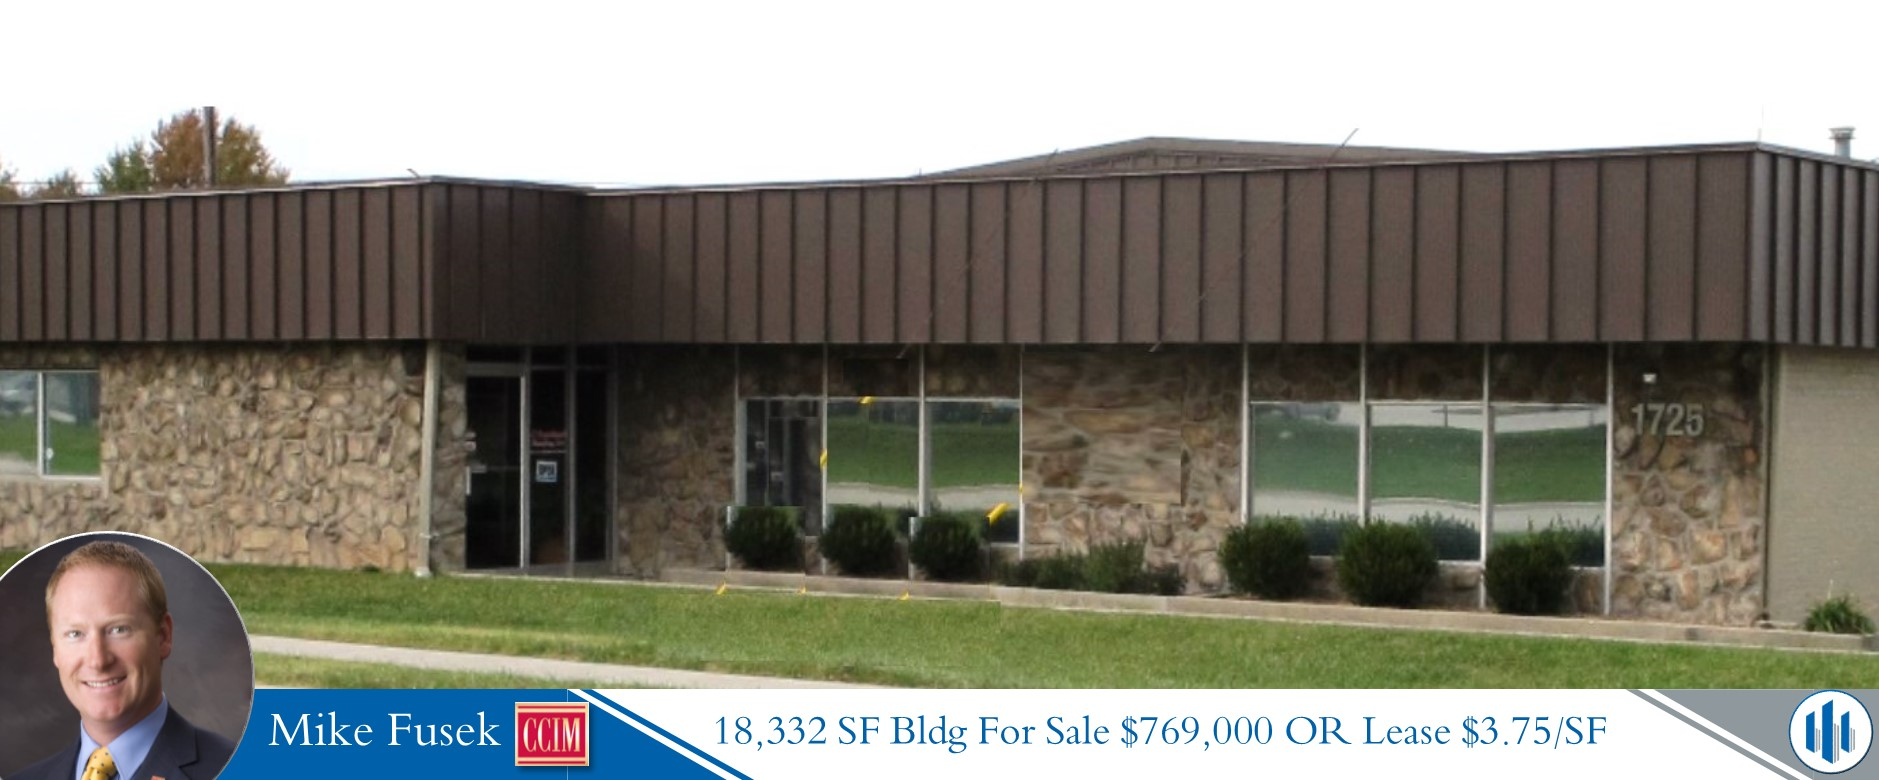 Mike Fusek's Featured Listing